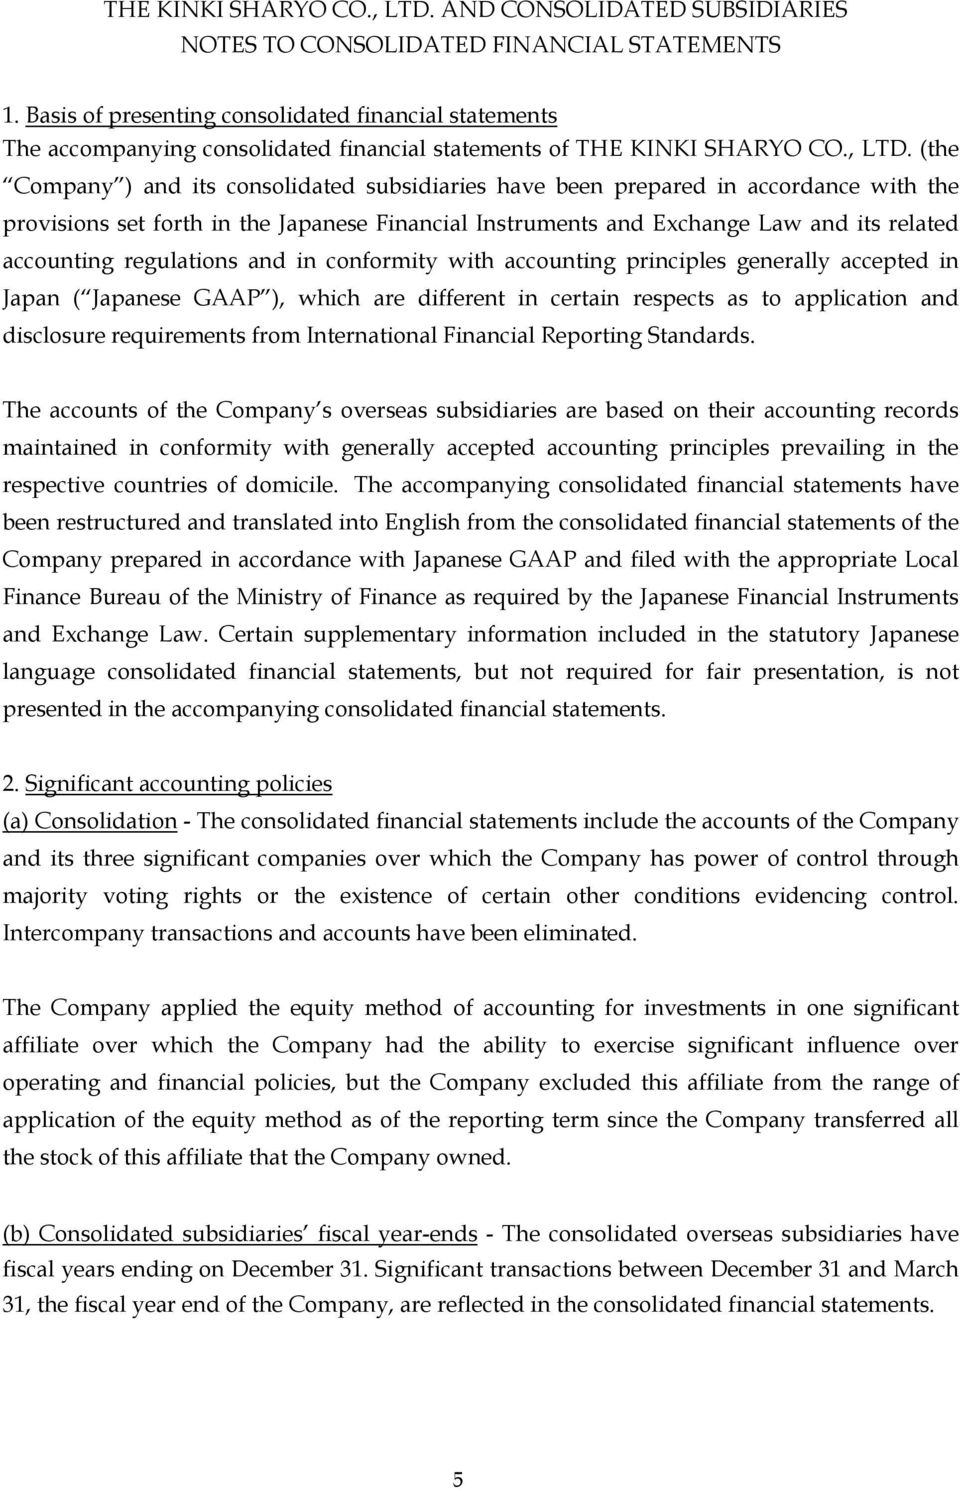 (the Company ) and its consolidated subsidiaries have been prepared in accordance with the provisions set forth in the Japanese Financial Instruments and Exchange Law and its related accounting